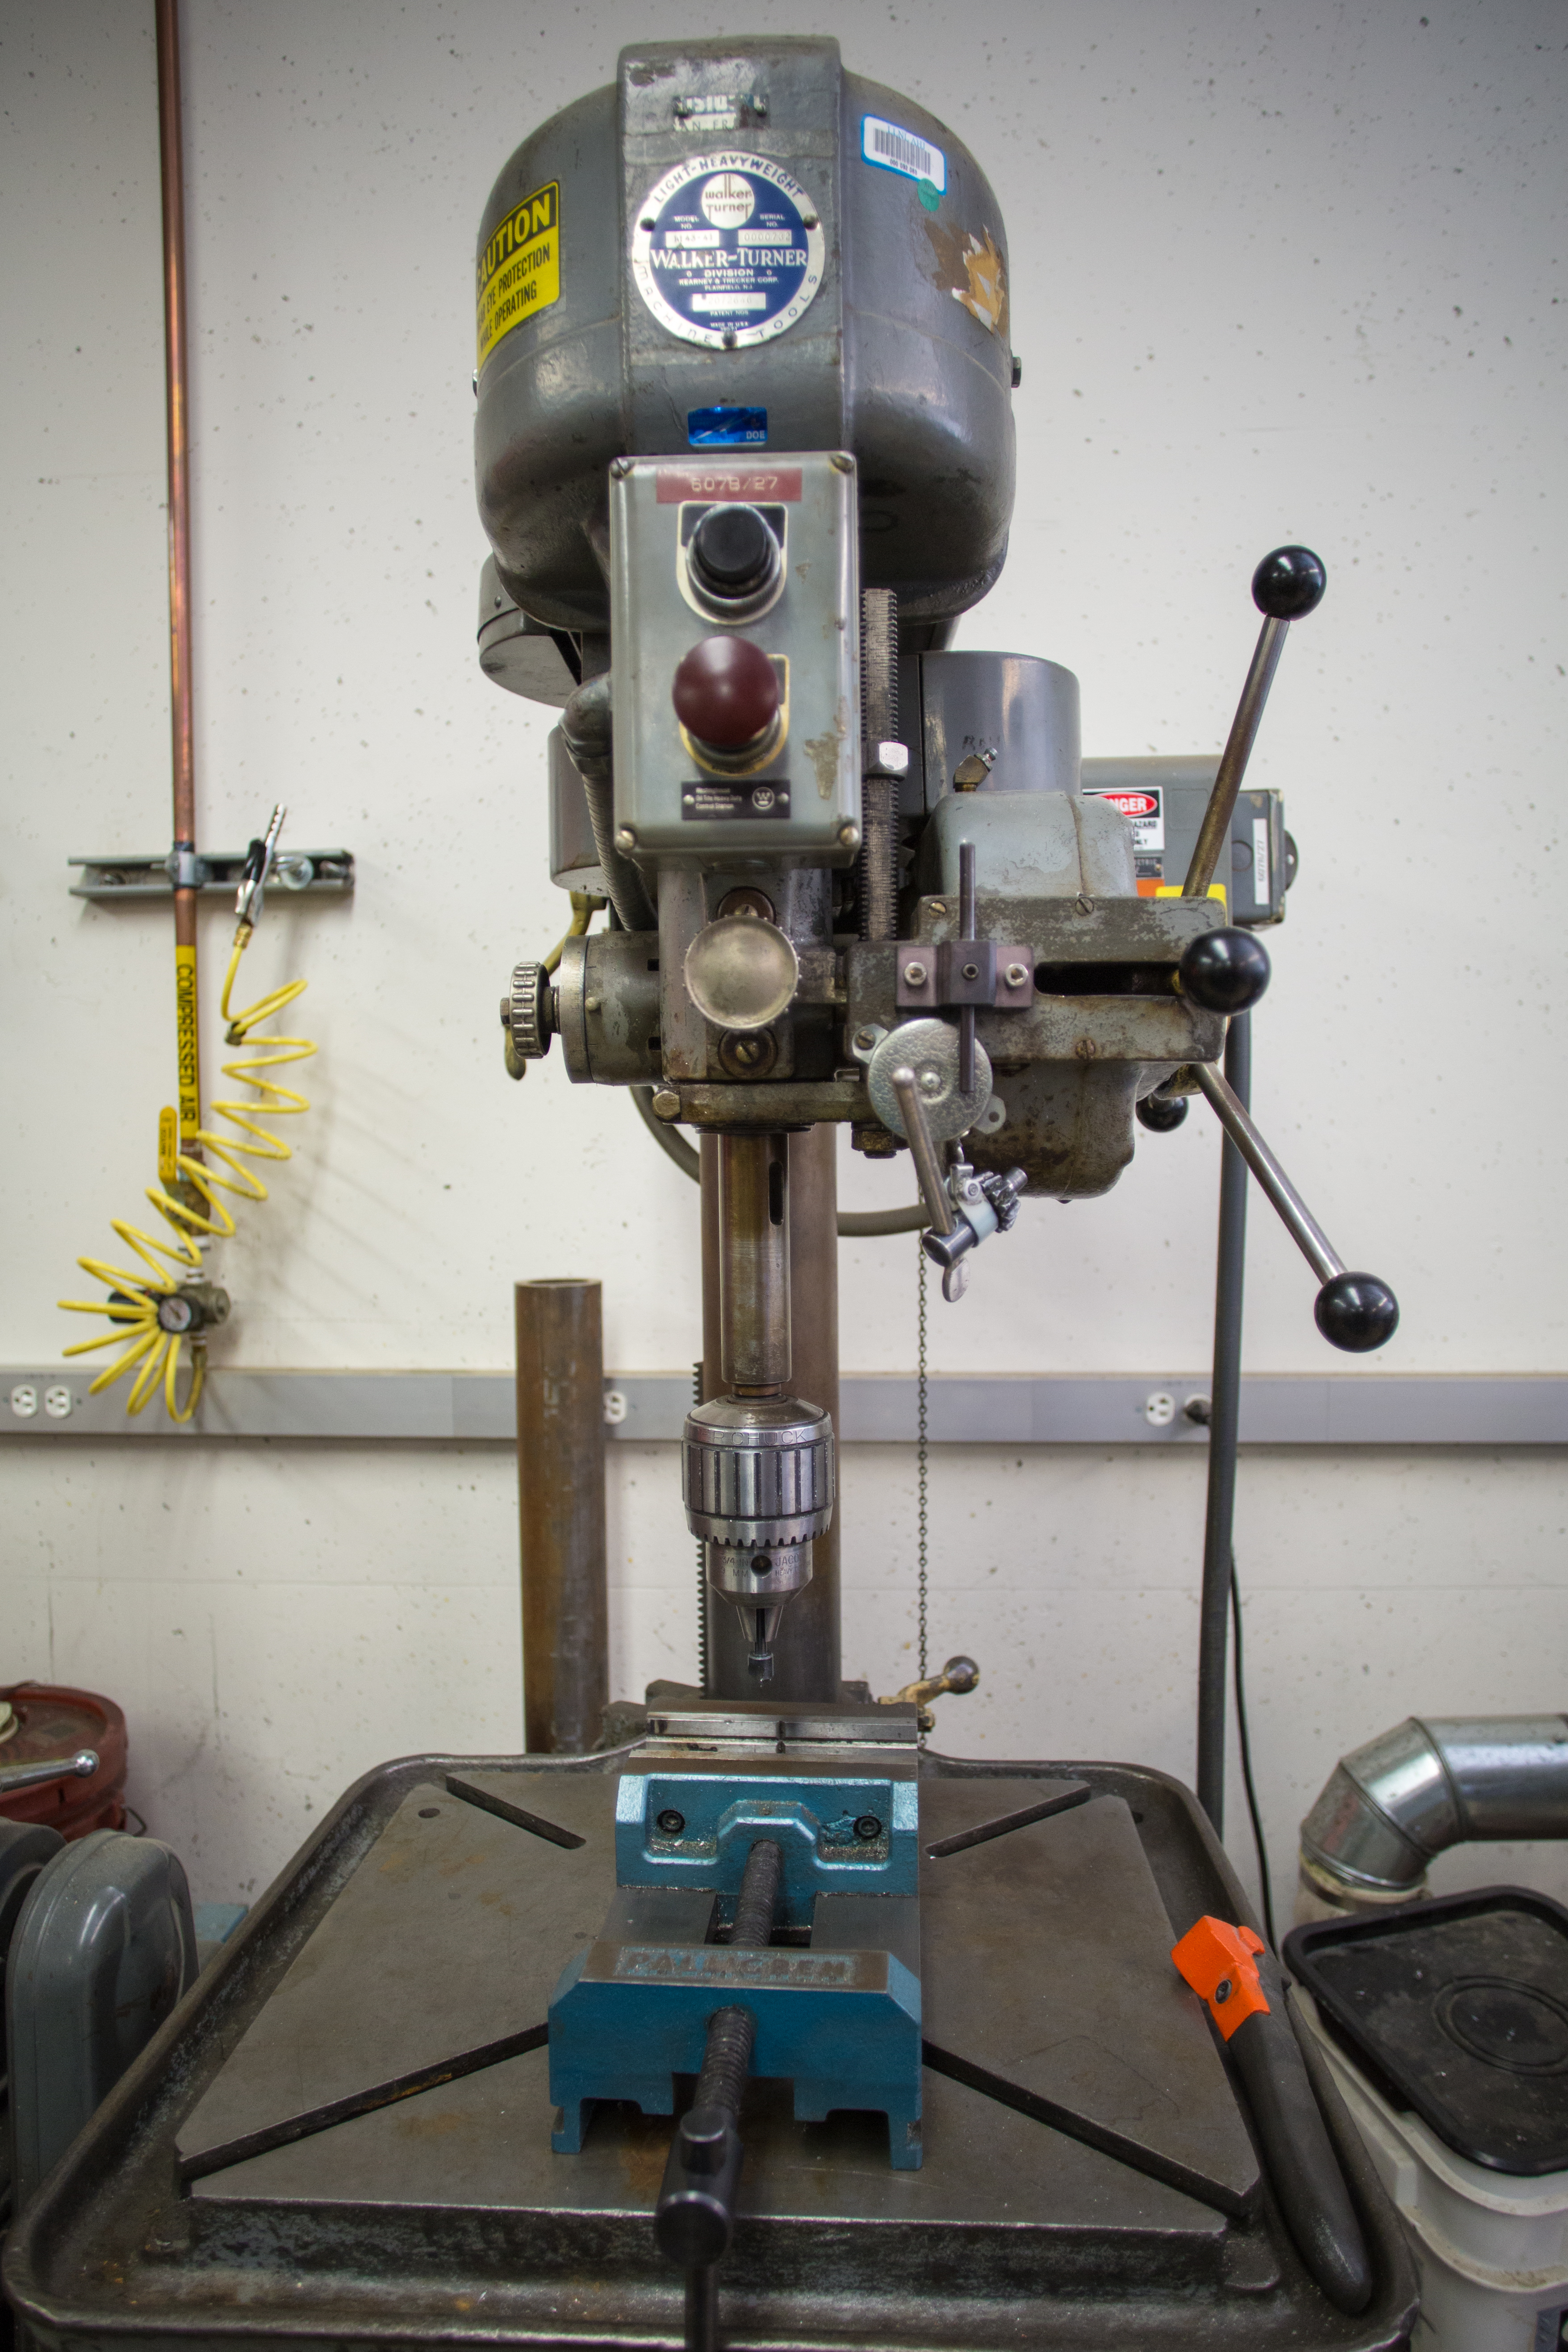 Drill Press in machine shop